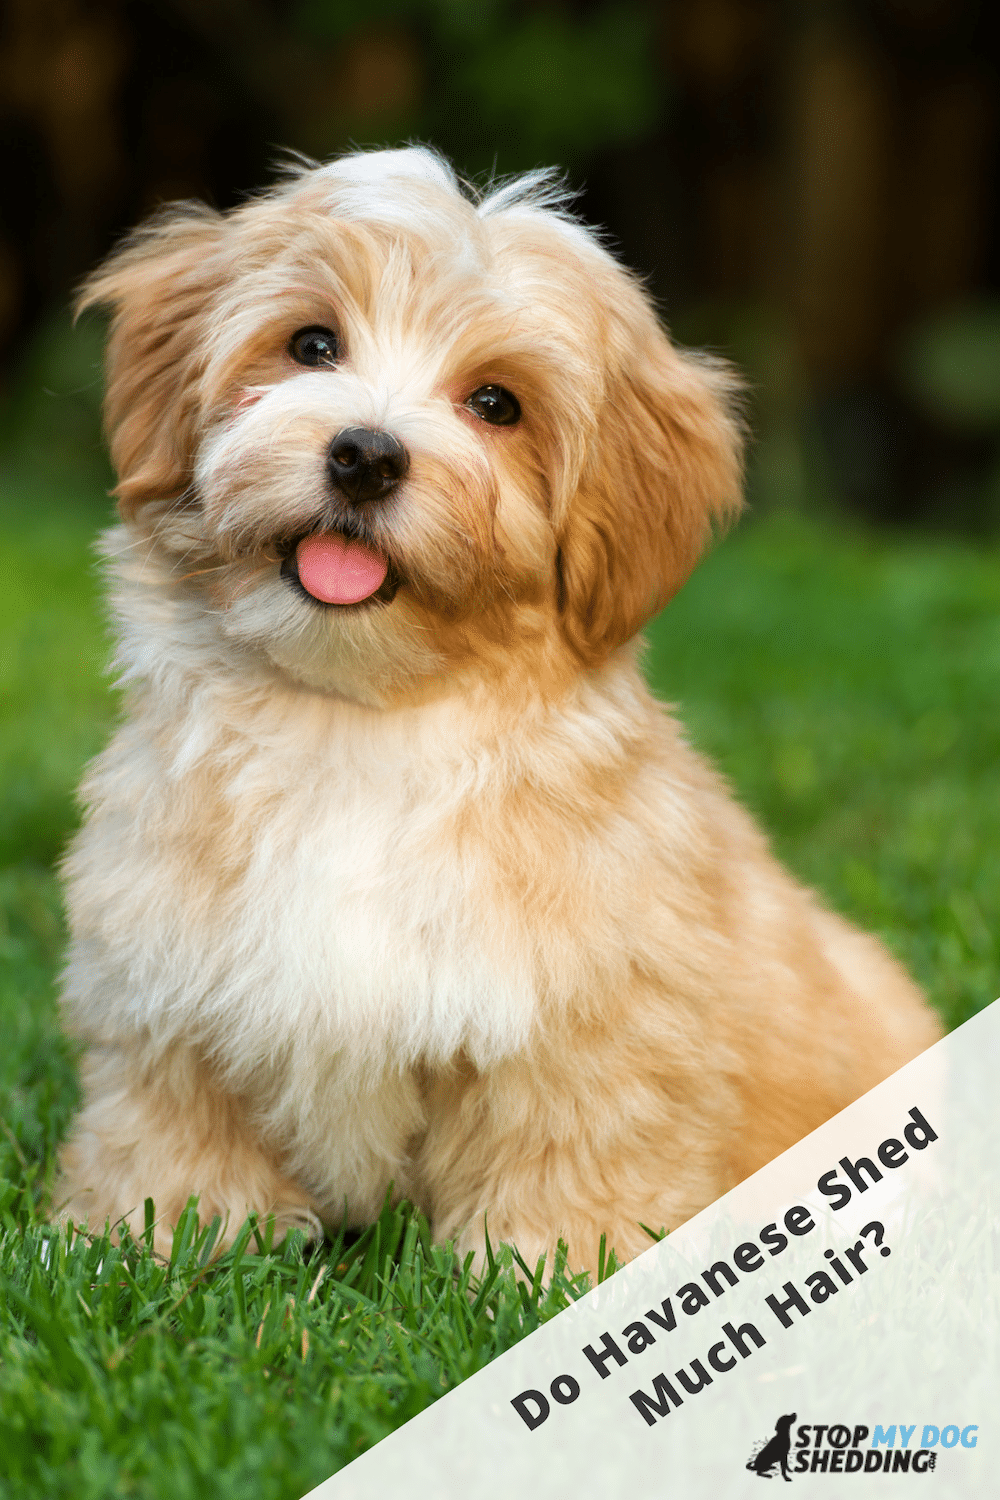 Do Havanese Dogs Shed Much?